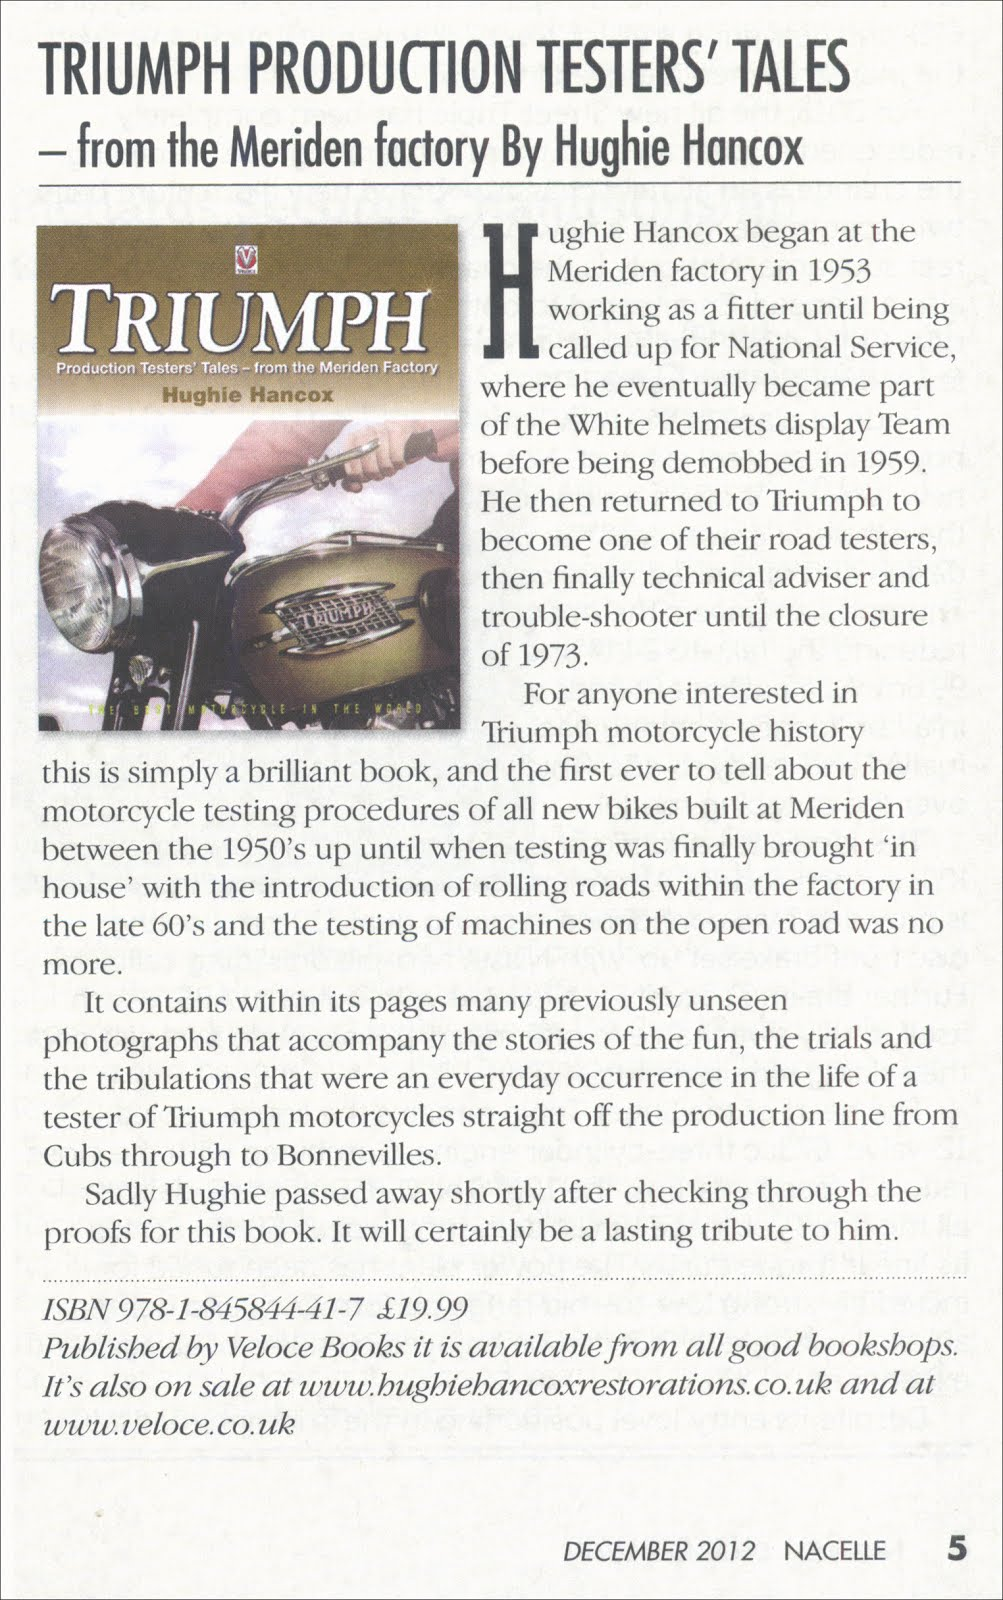 Veloce publishing automotive stuff november 2012 brand new veloce book triumph production testers tales from the meriden factory is reviewed in the december 2012 edition of nacelle fandeluxe Image collections